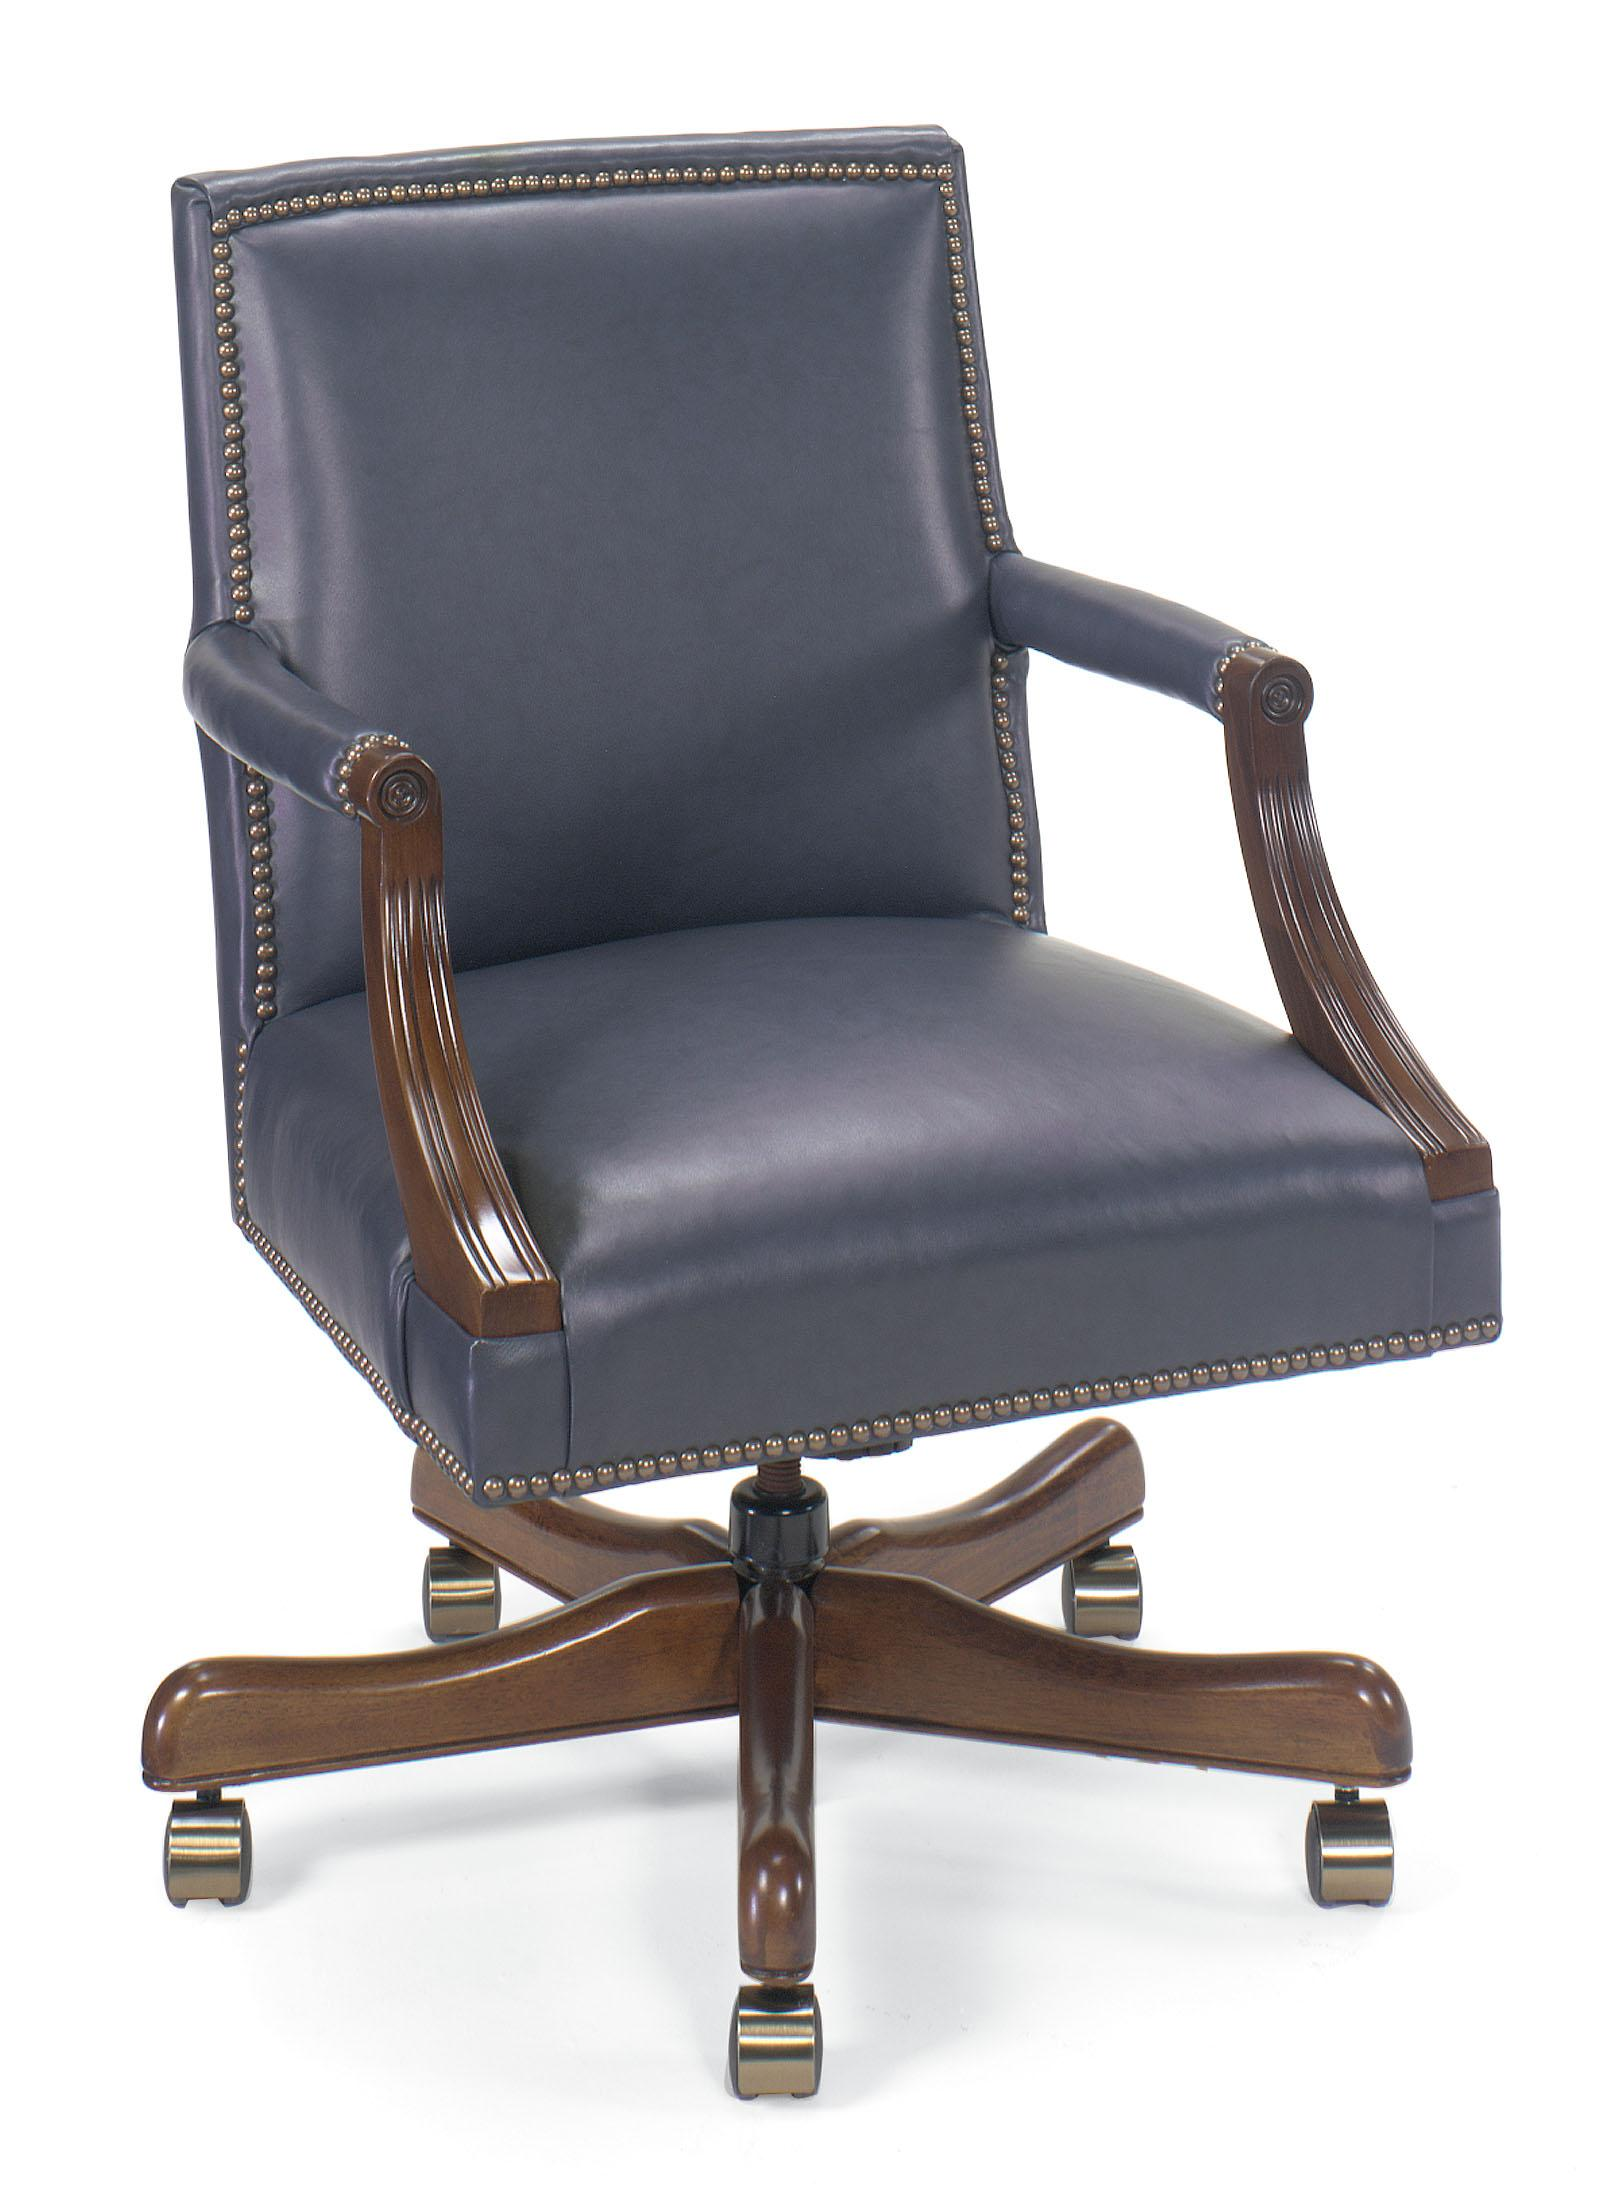 Fairfield Office Furnishings Executive Swivel Chair - Item Number: 1099-35